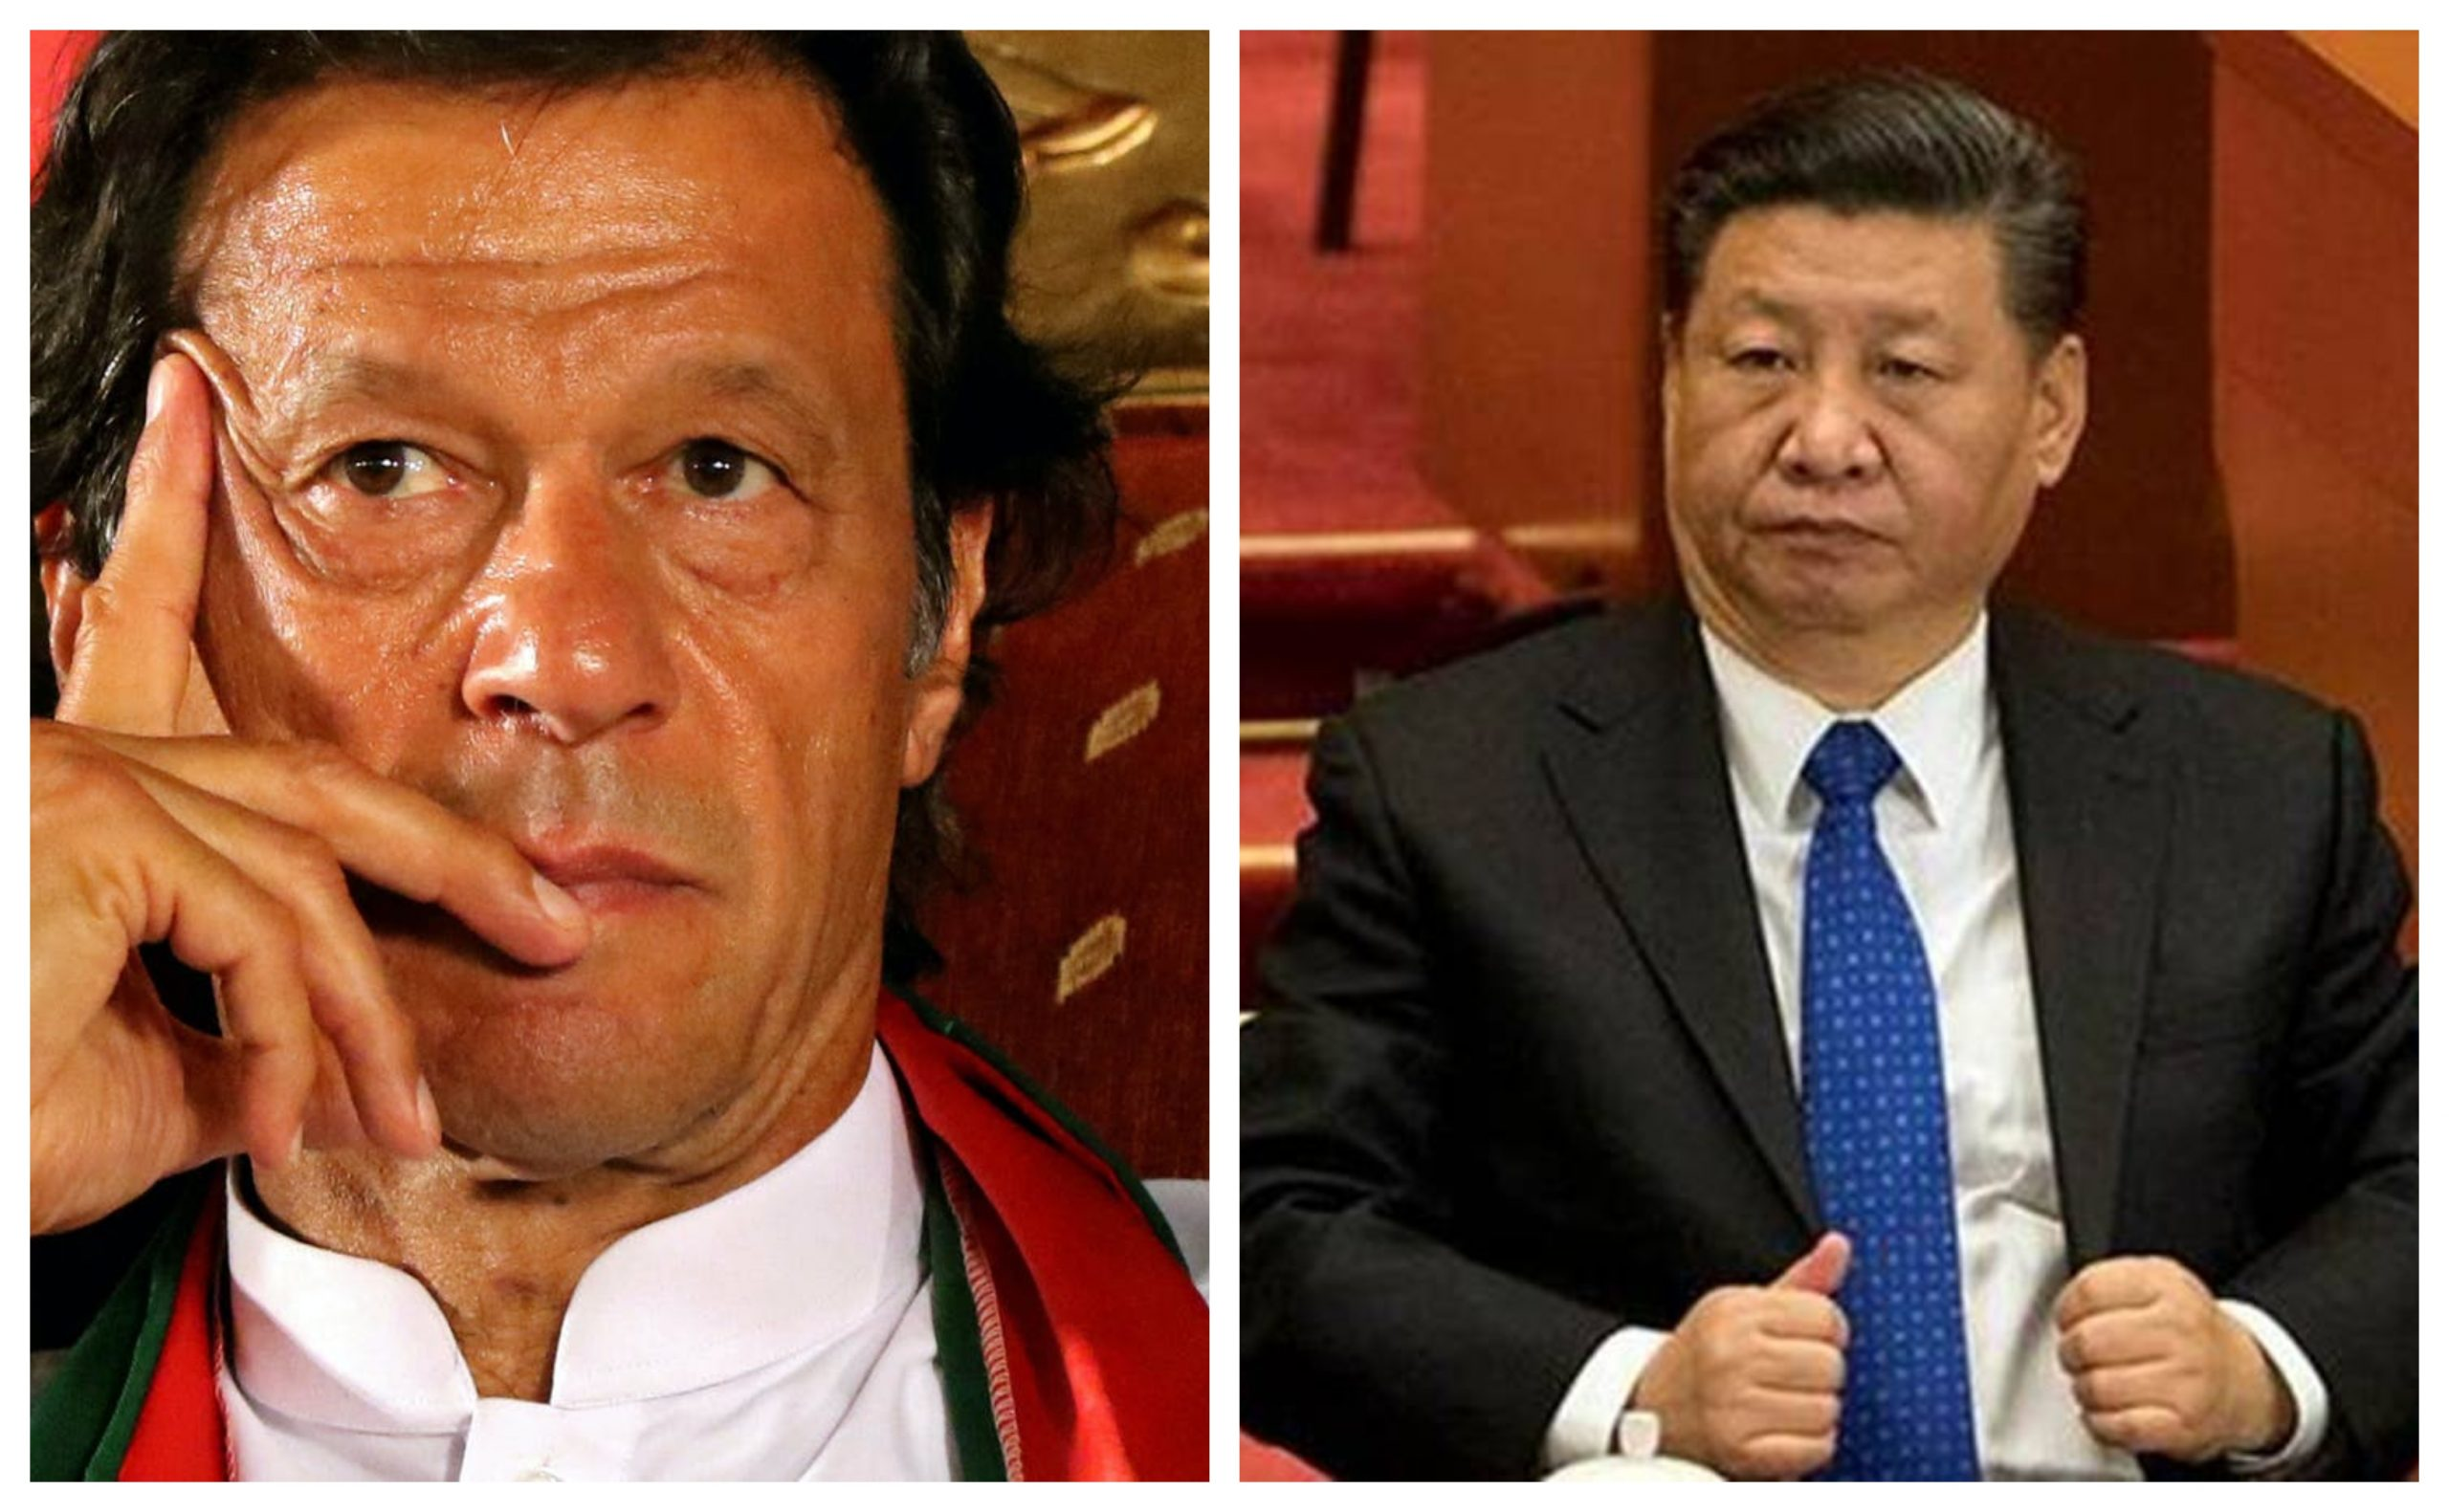 Disagreements emerge between China and Pakistan over CPEC project